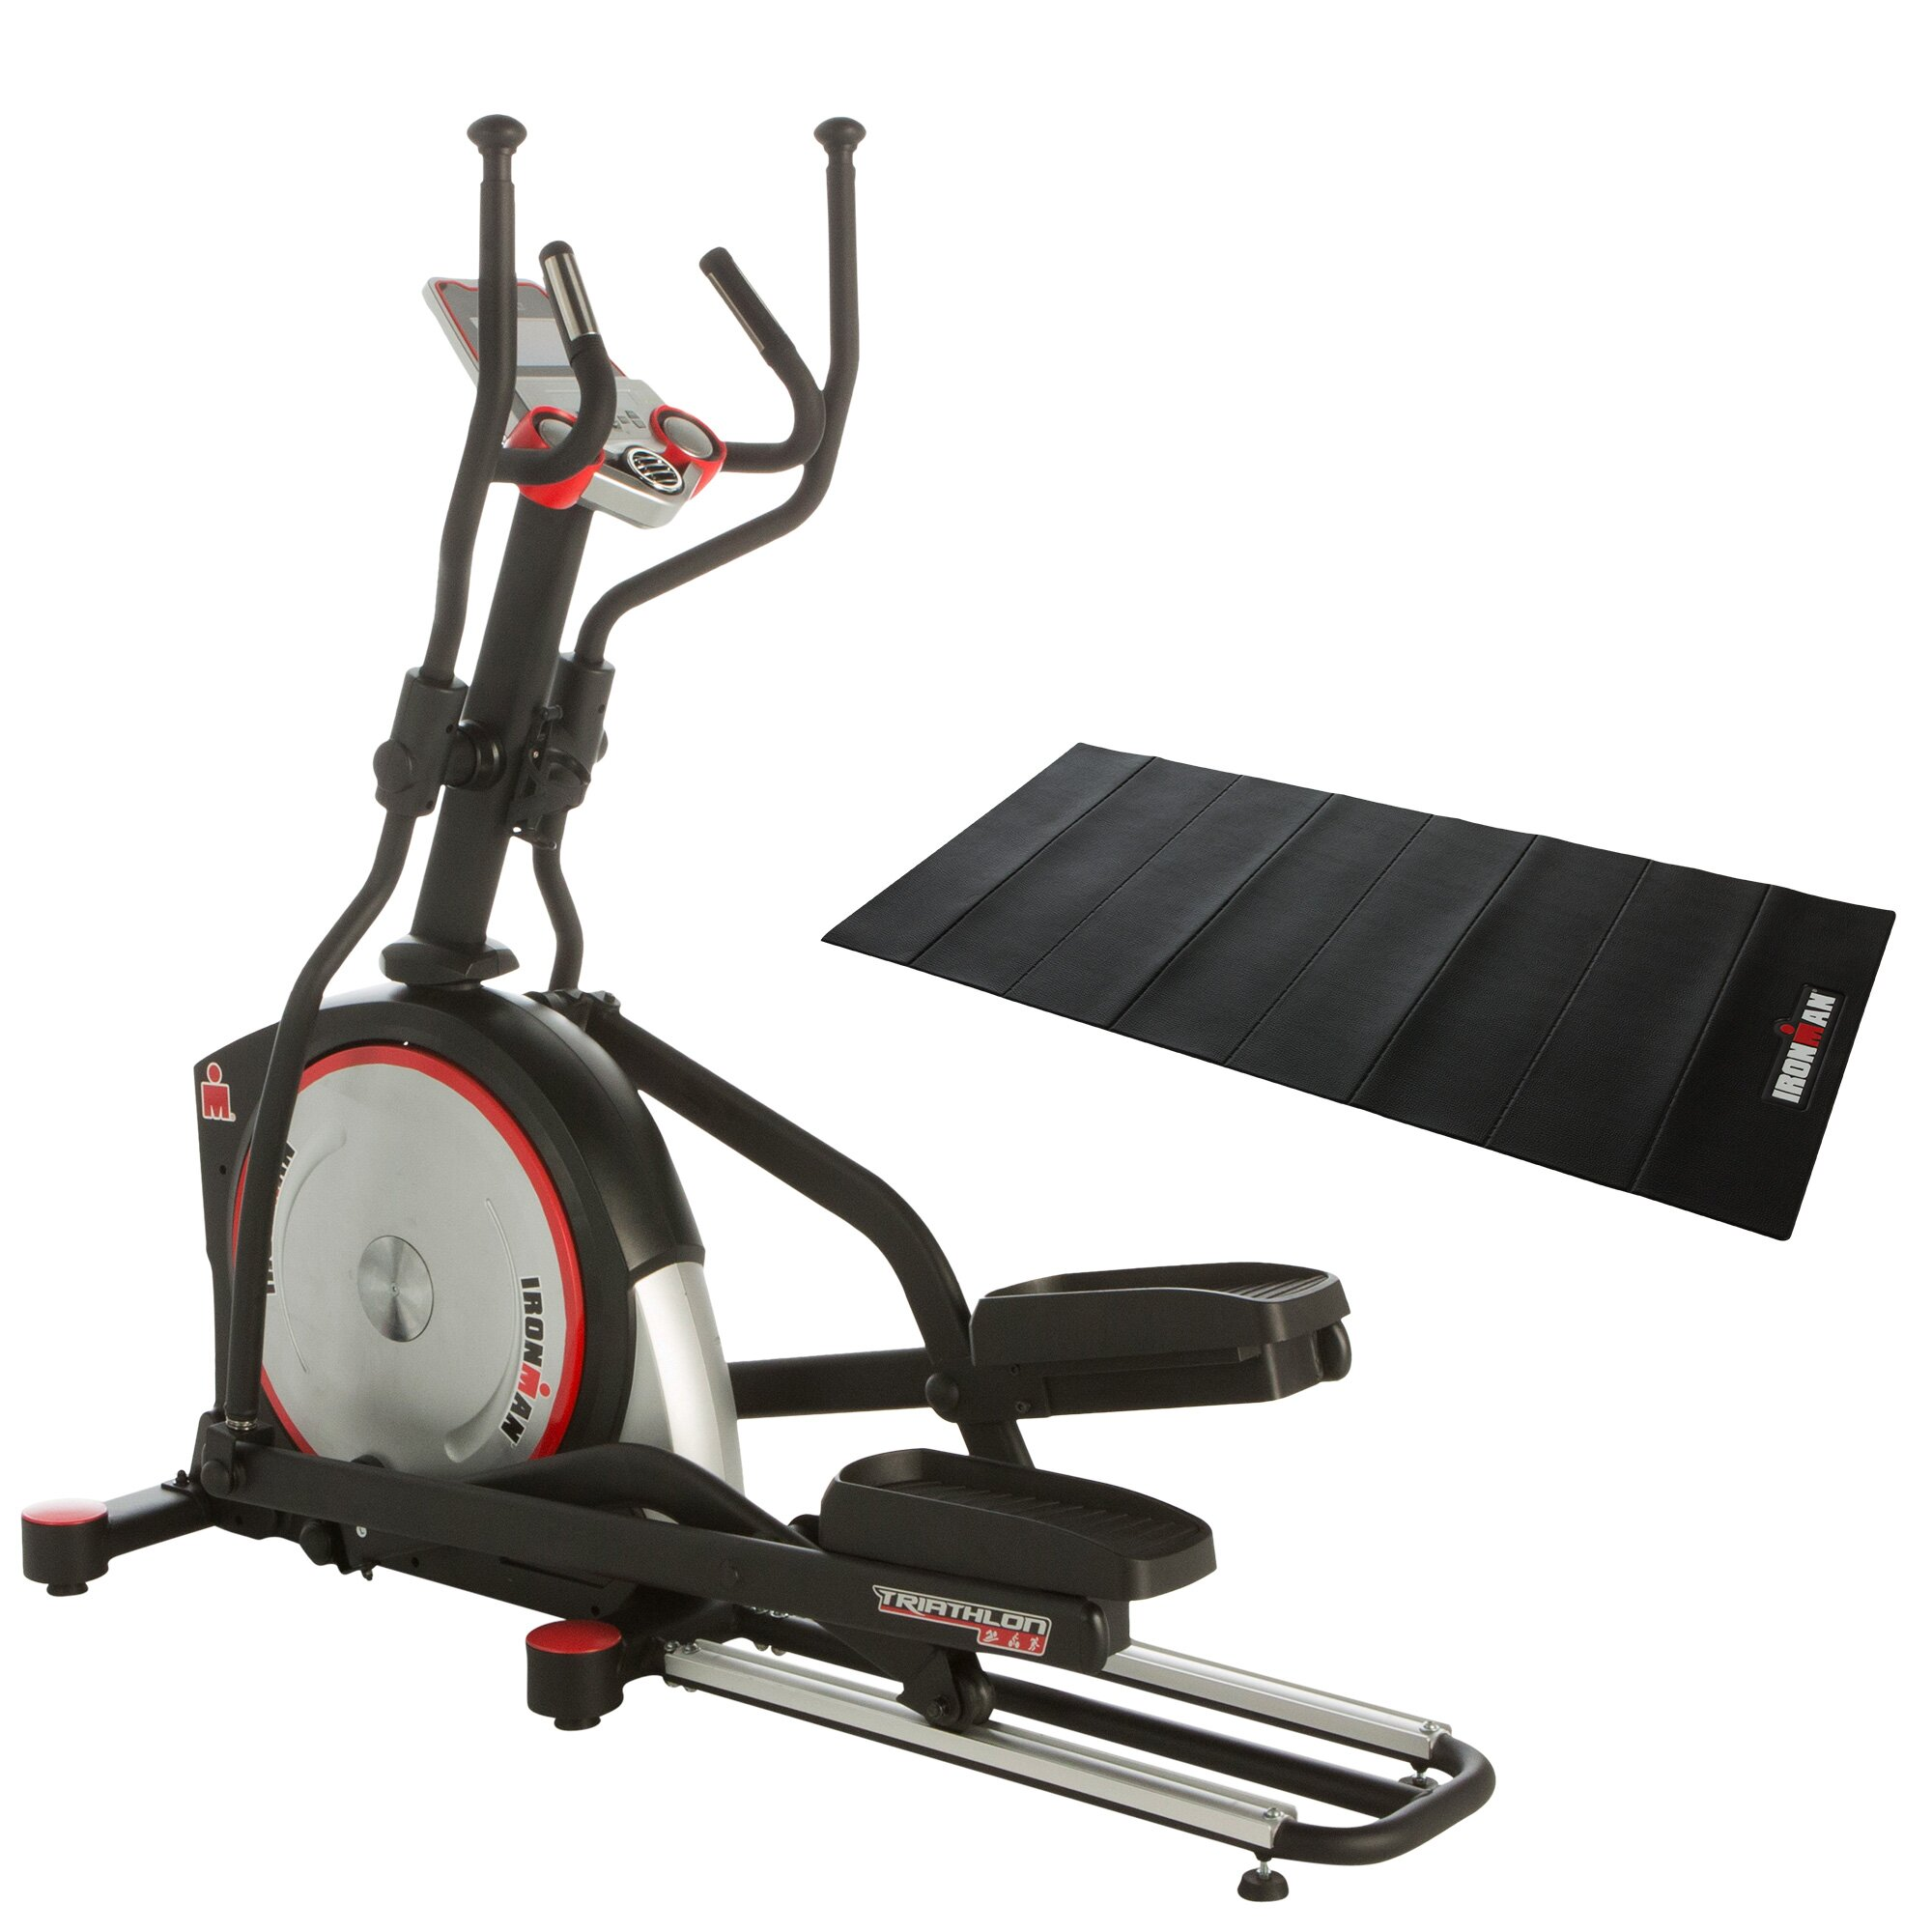 True Elliptical Used For Sale: IRONMAN X-Class 610 Smart Technology Elliptical Trainer